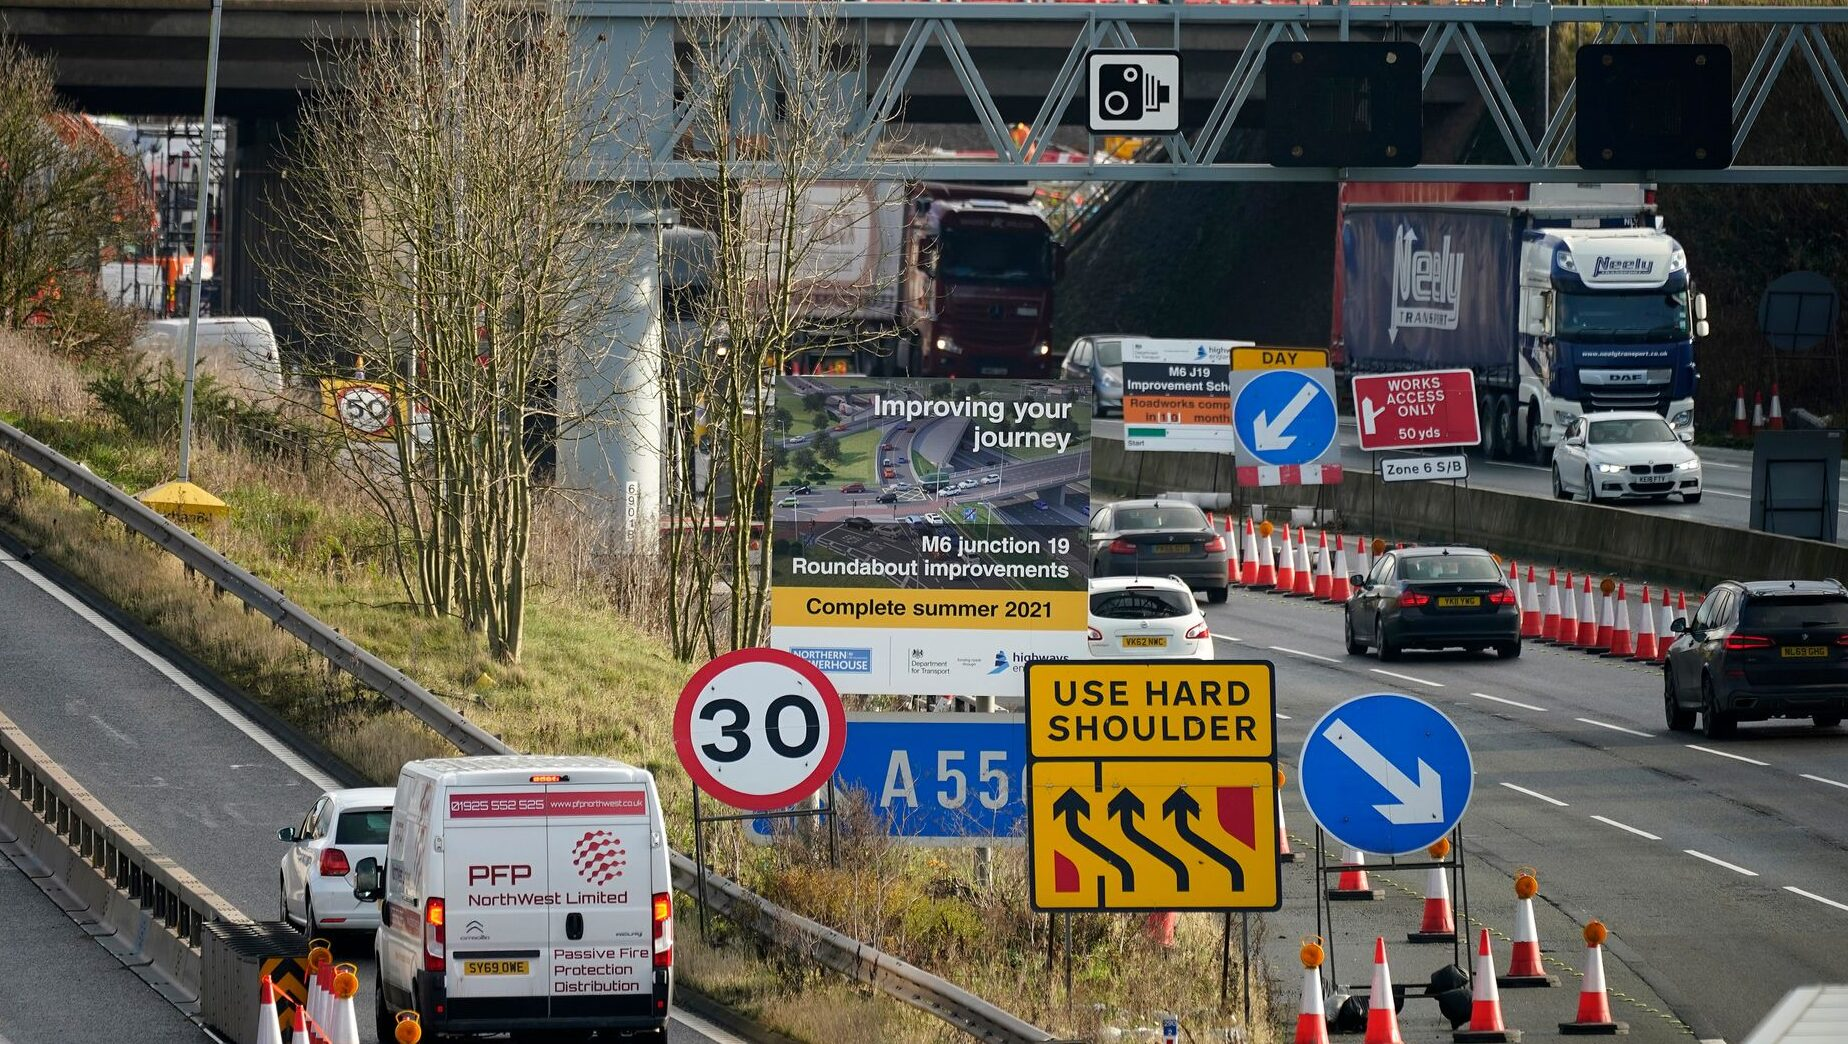 Nearly 800 miles of UK roadworks will be cleared to avoid Christmas travel chaos, The Manc